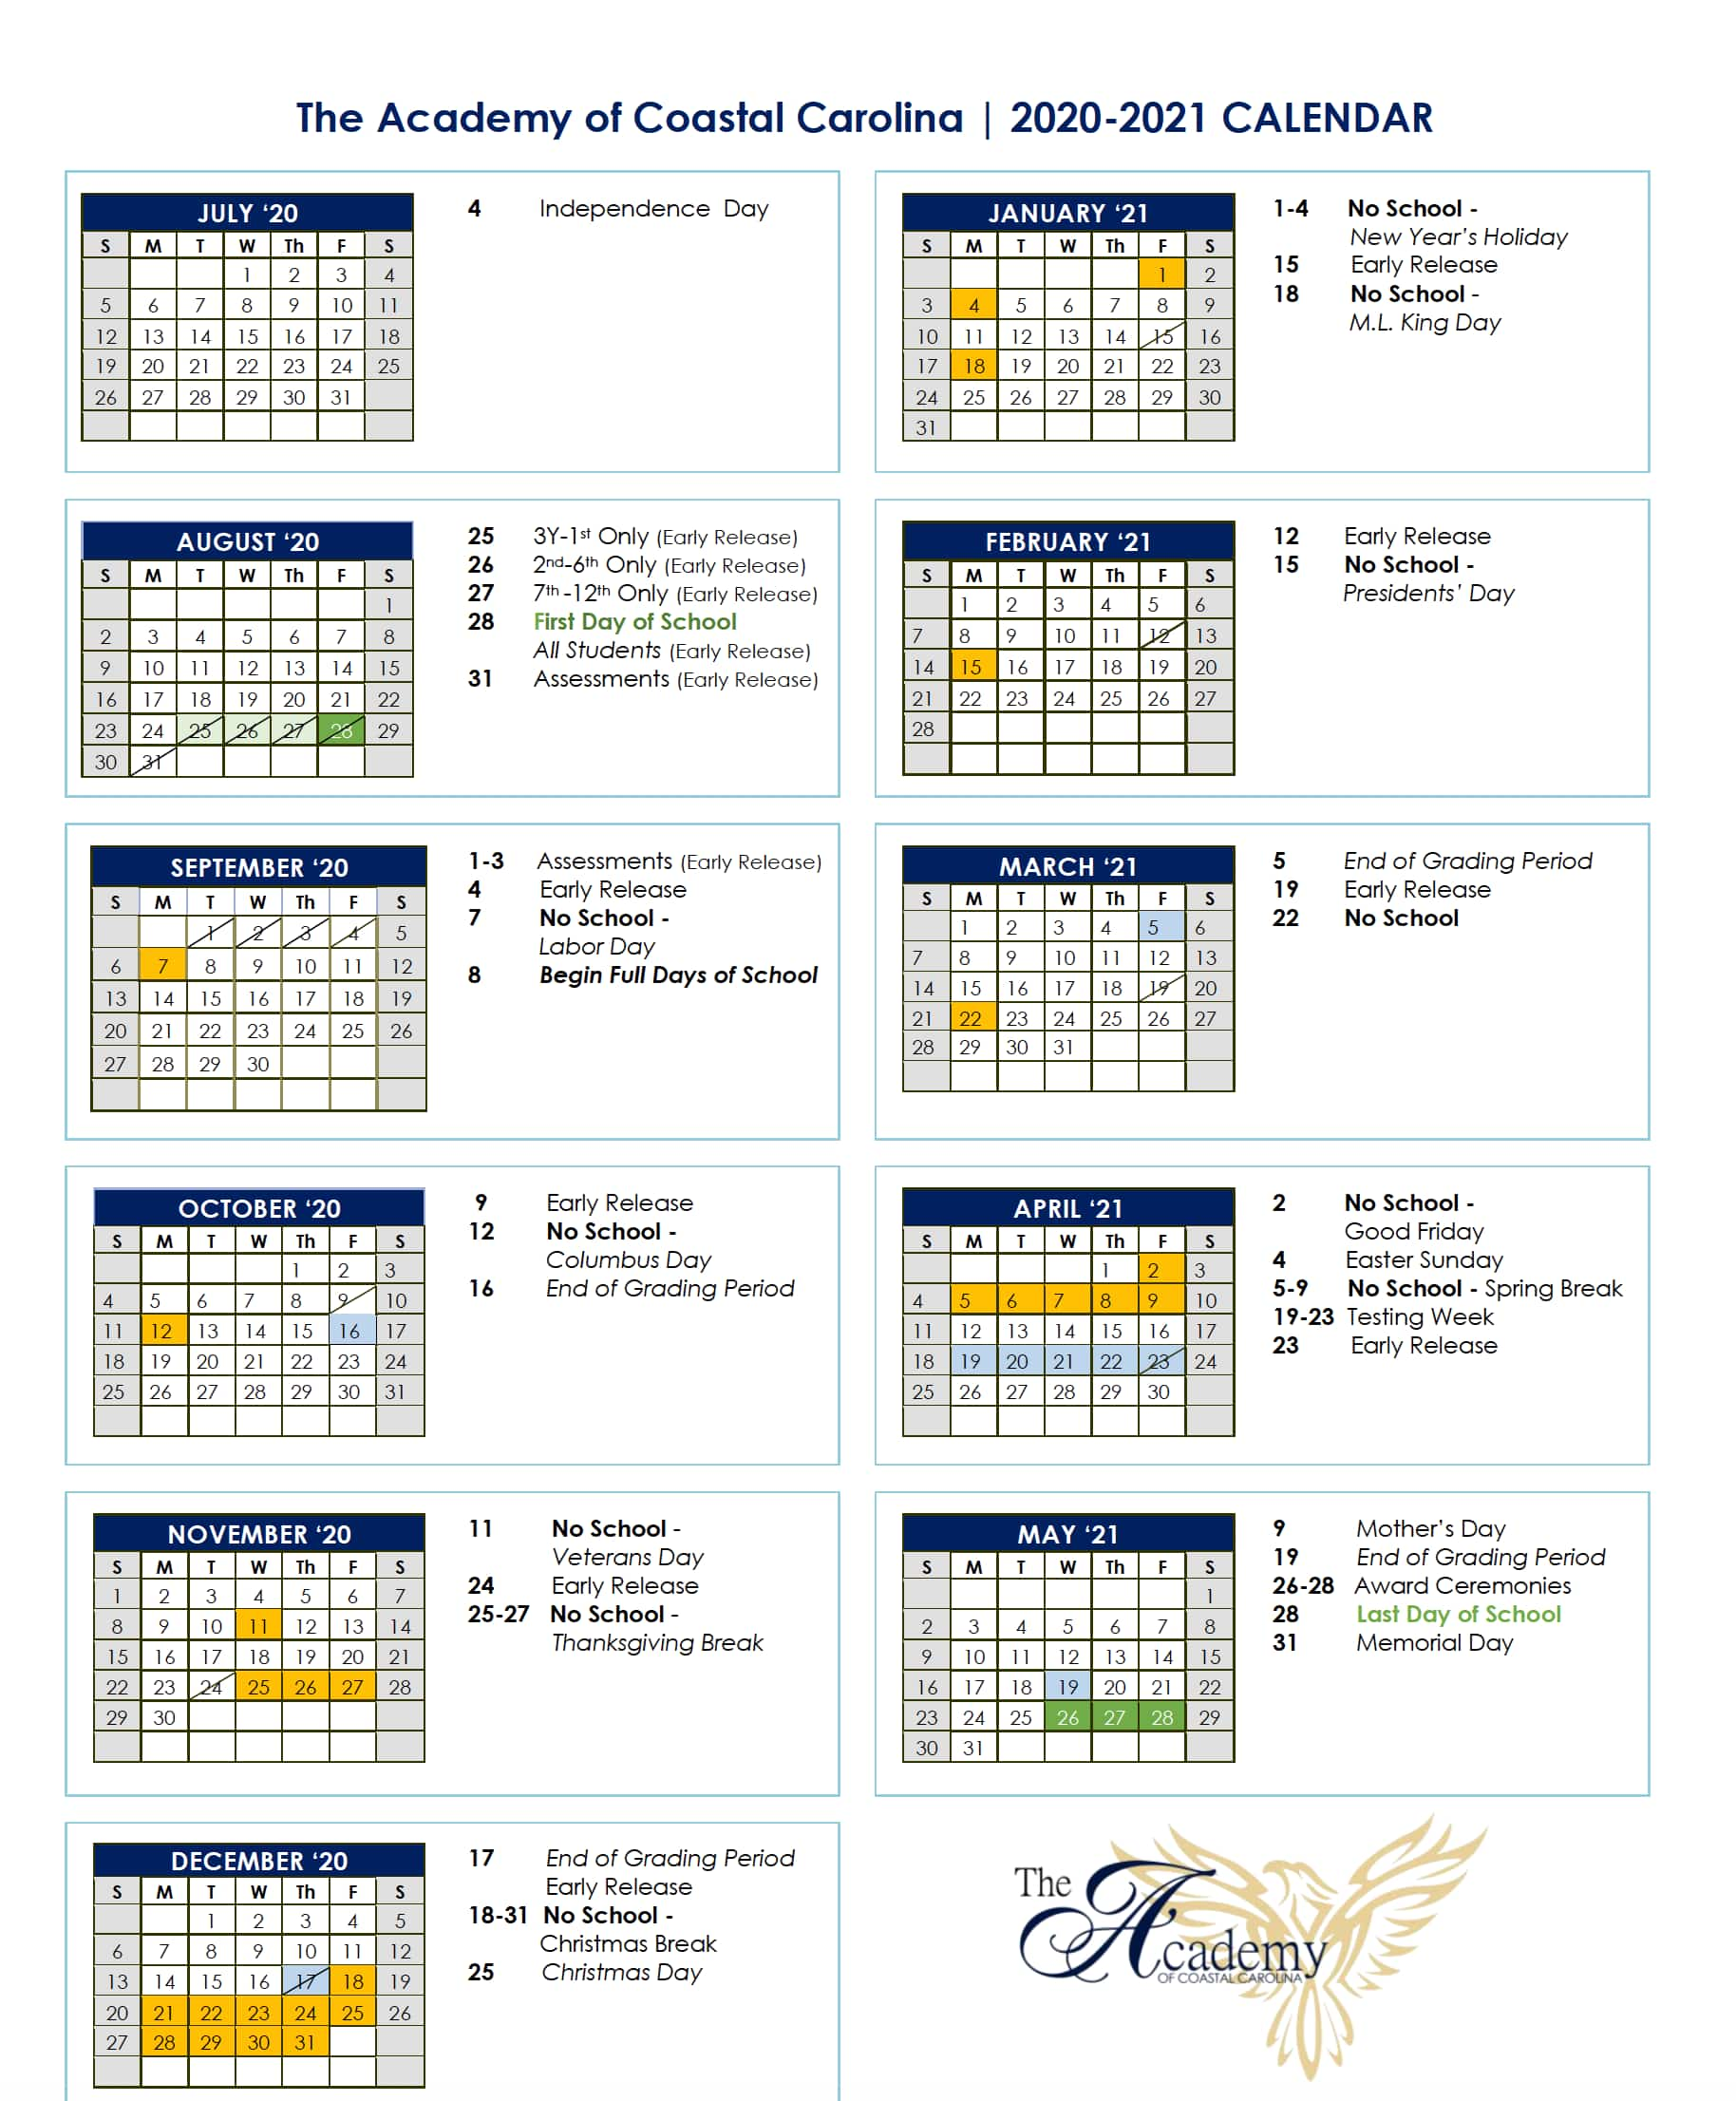 The academy of coastal carolina academic calendar